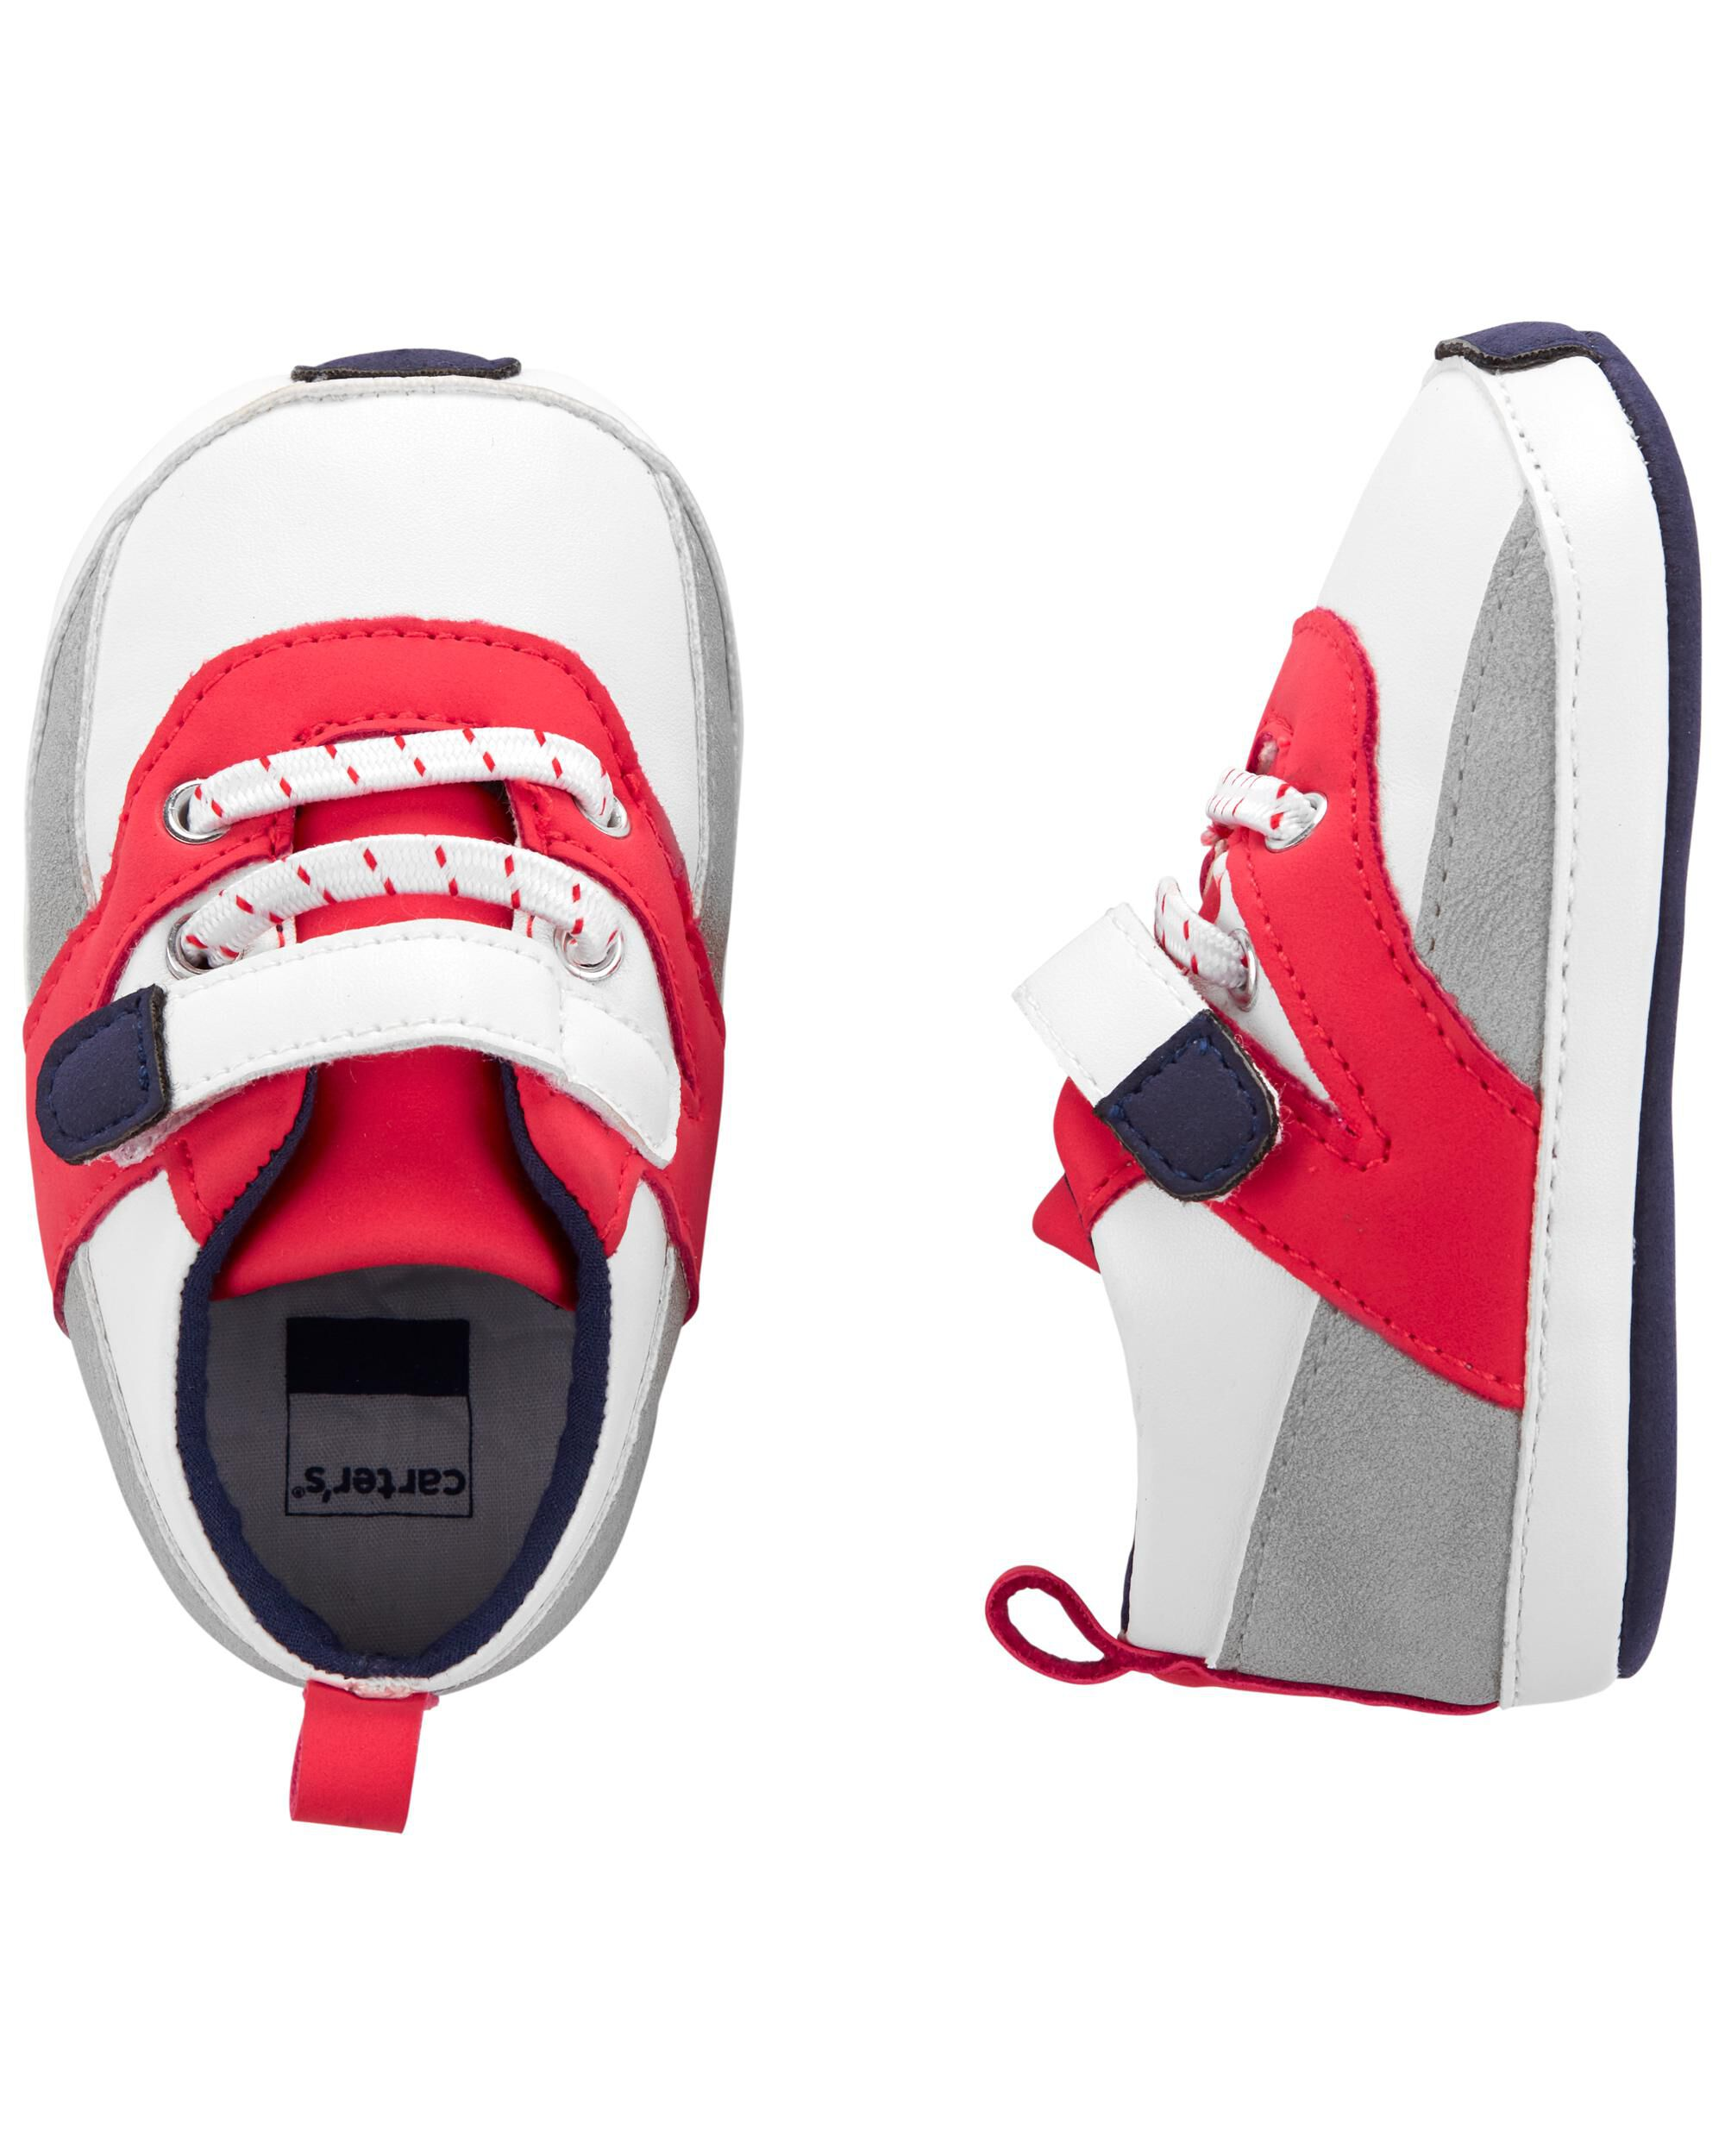 Carters Sneaker Baby Shoes